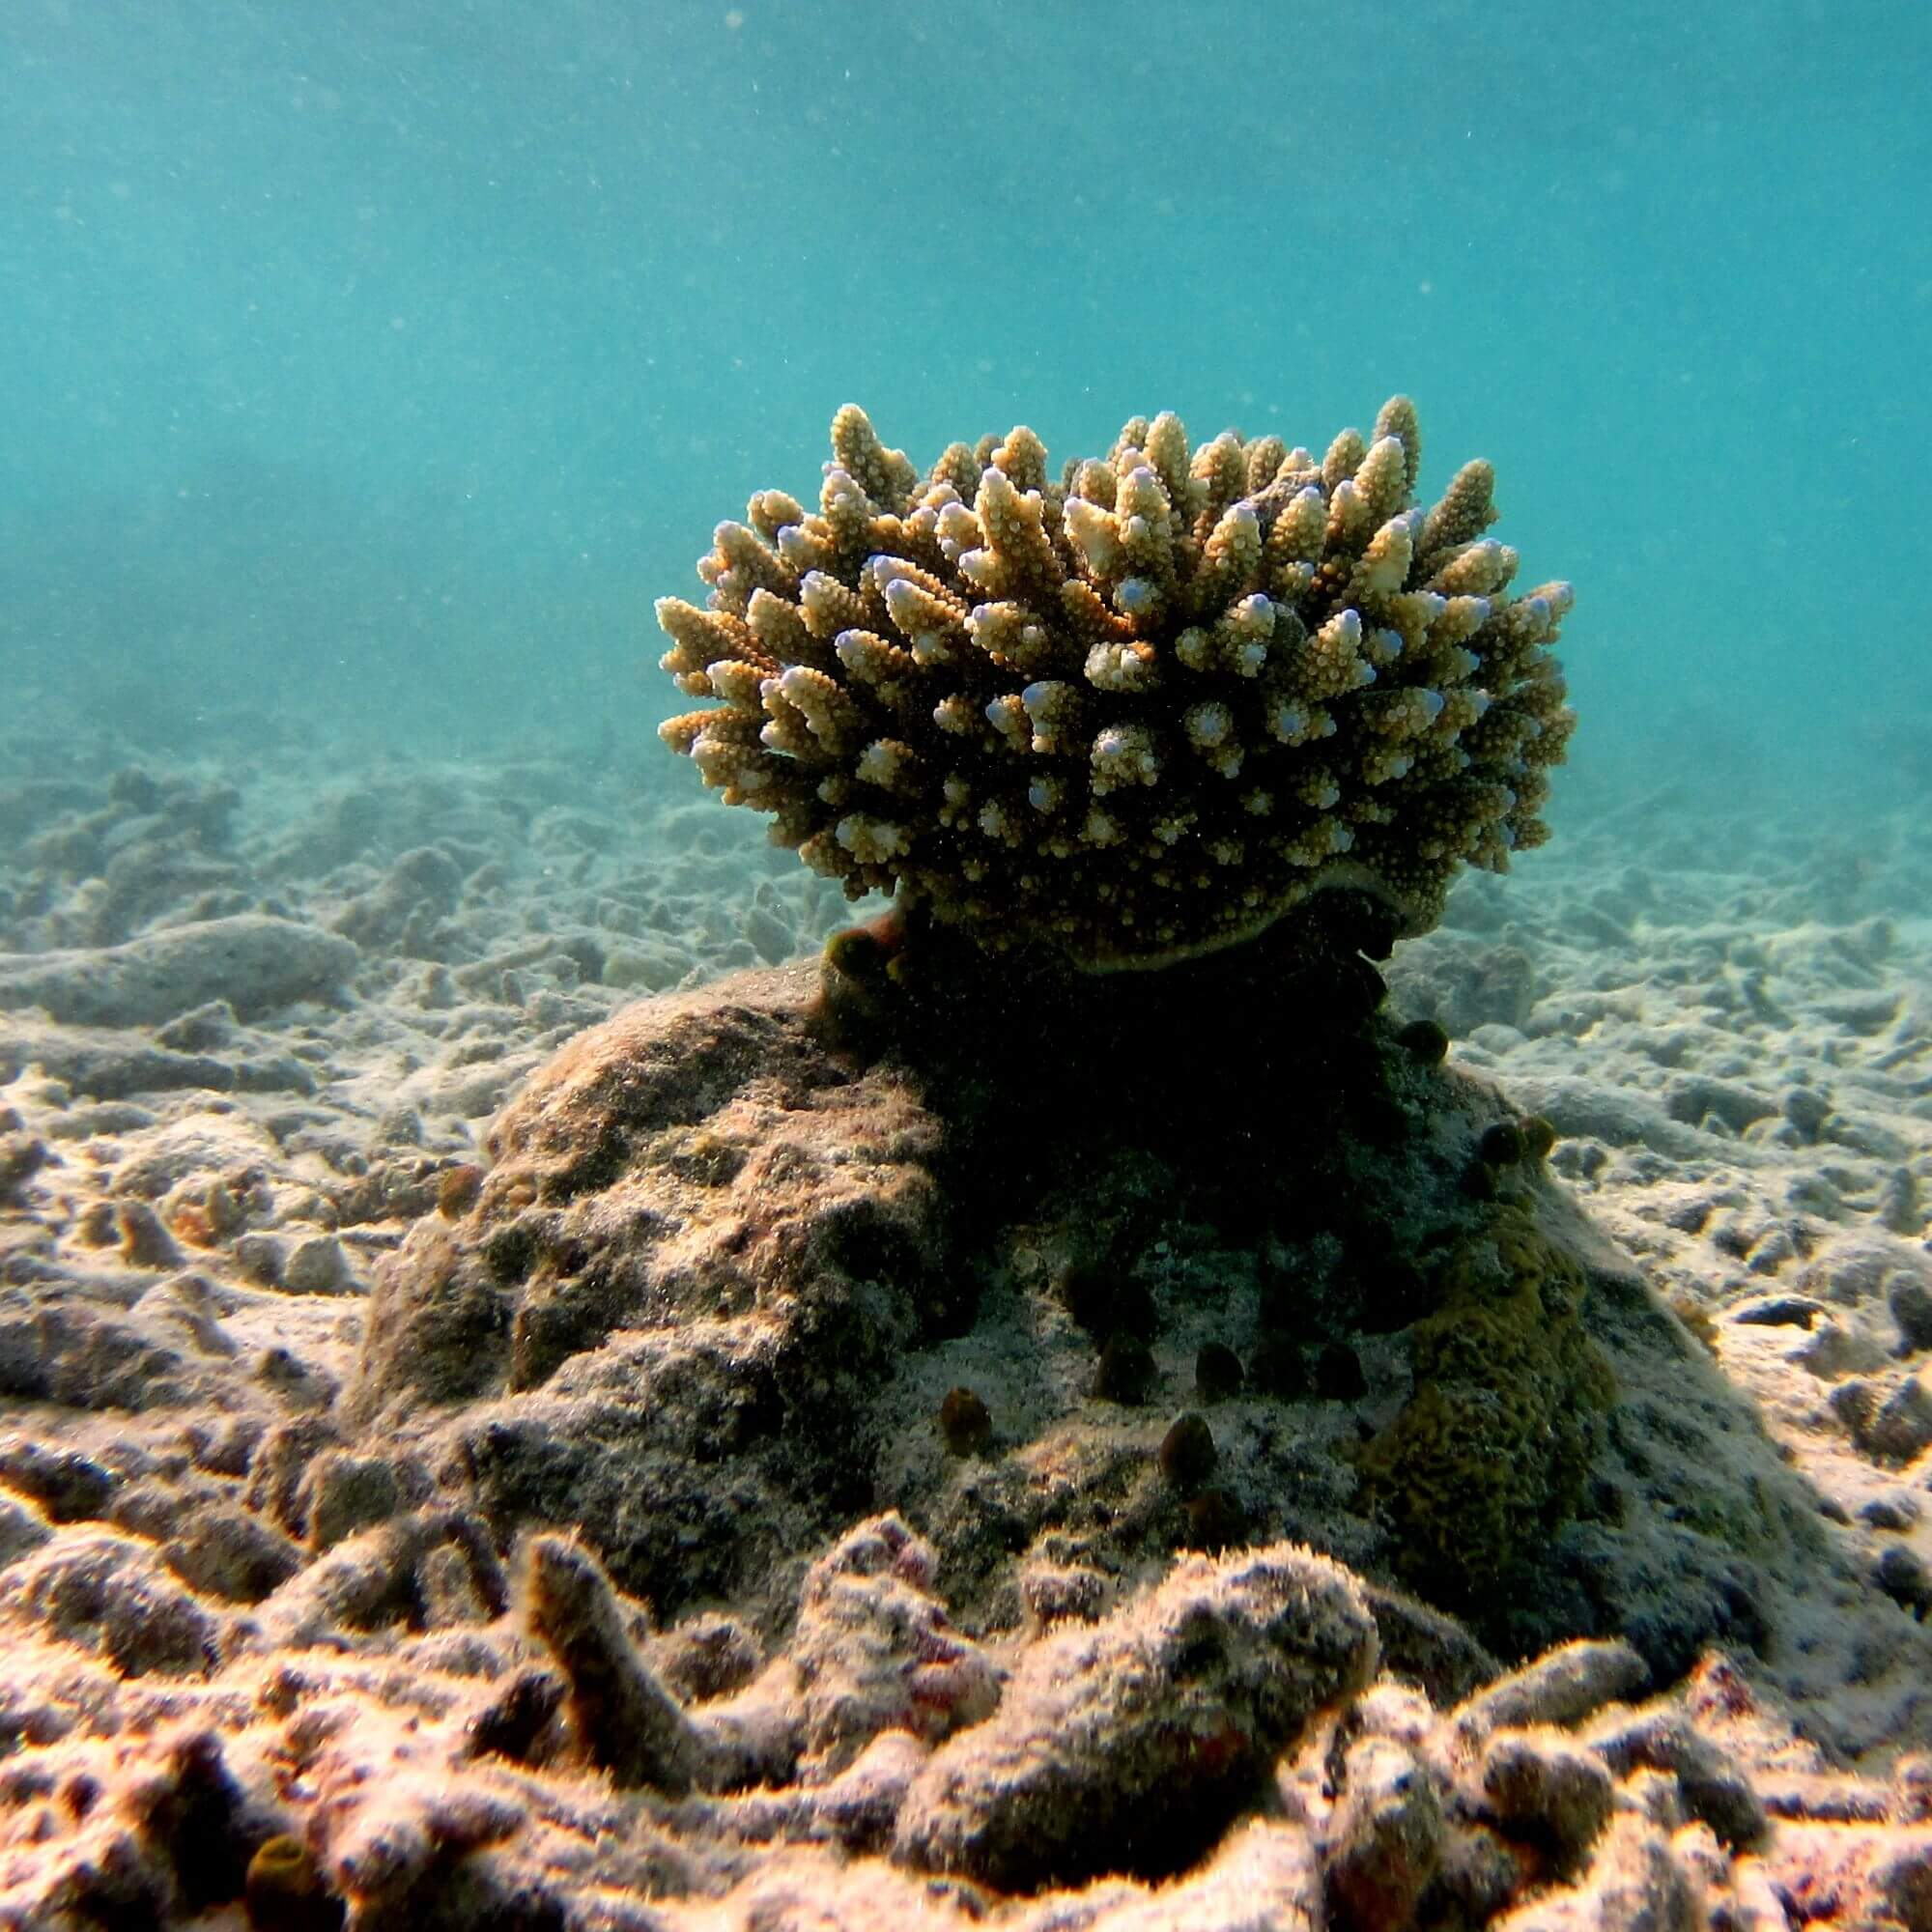 Image of coral reef on the sea bed.